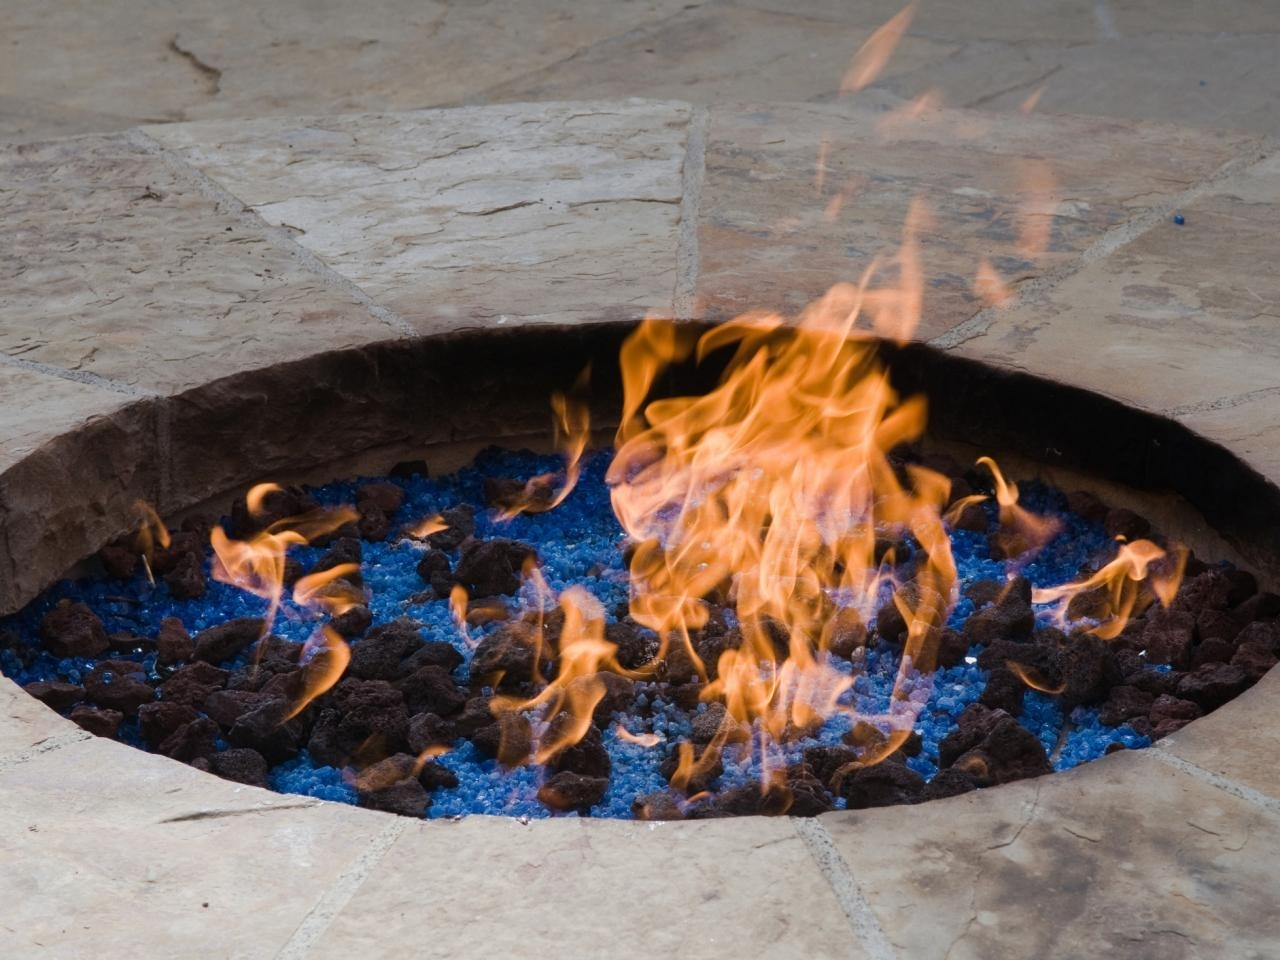 Propane Vs Natural Gas For A Fire Pit Hgtv Pertaining To Outdoor Fireplace Burner Outdoor Fireplace Burner Clan